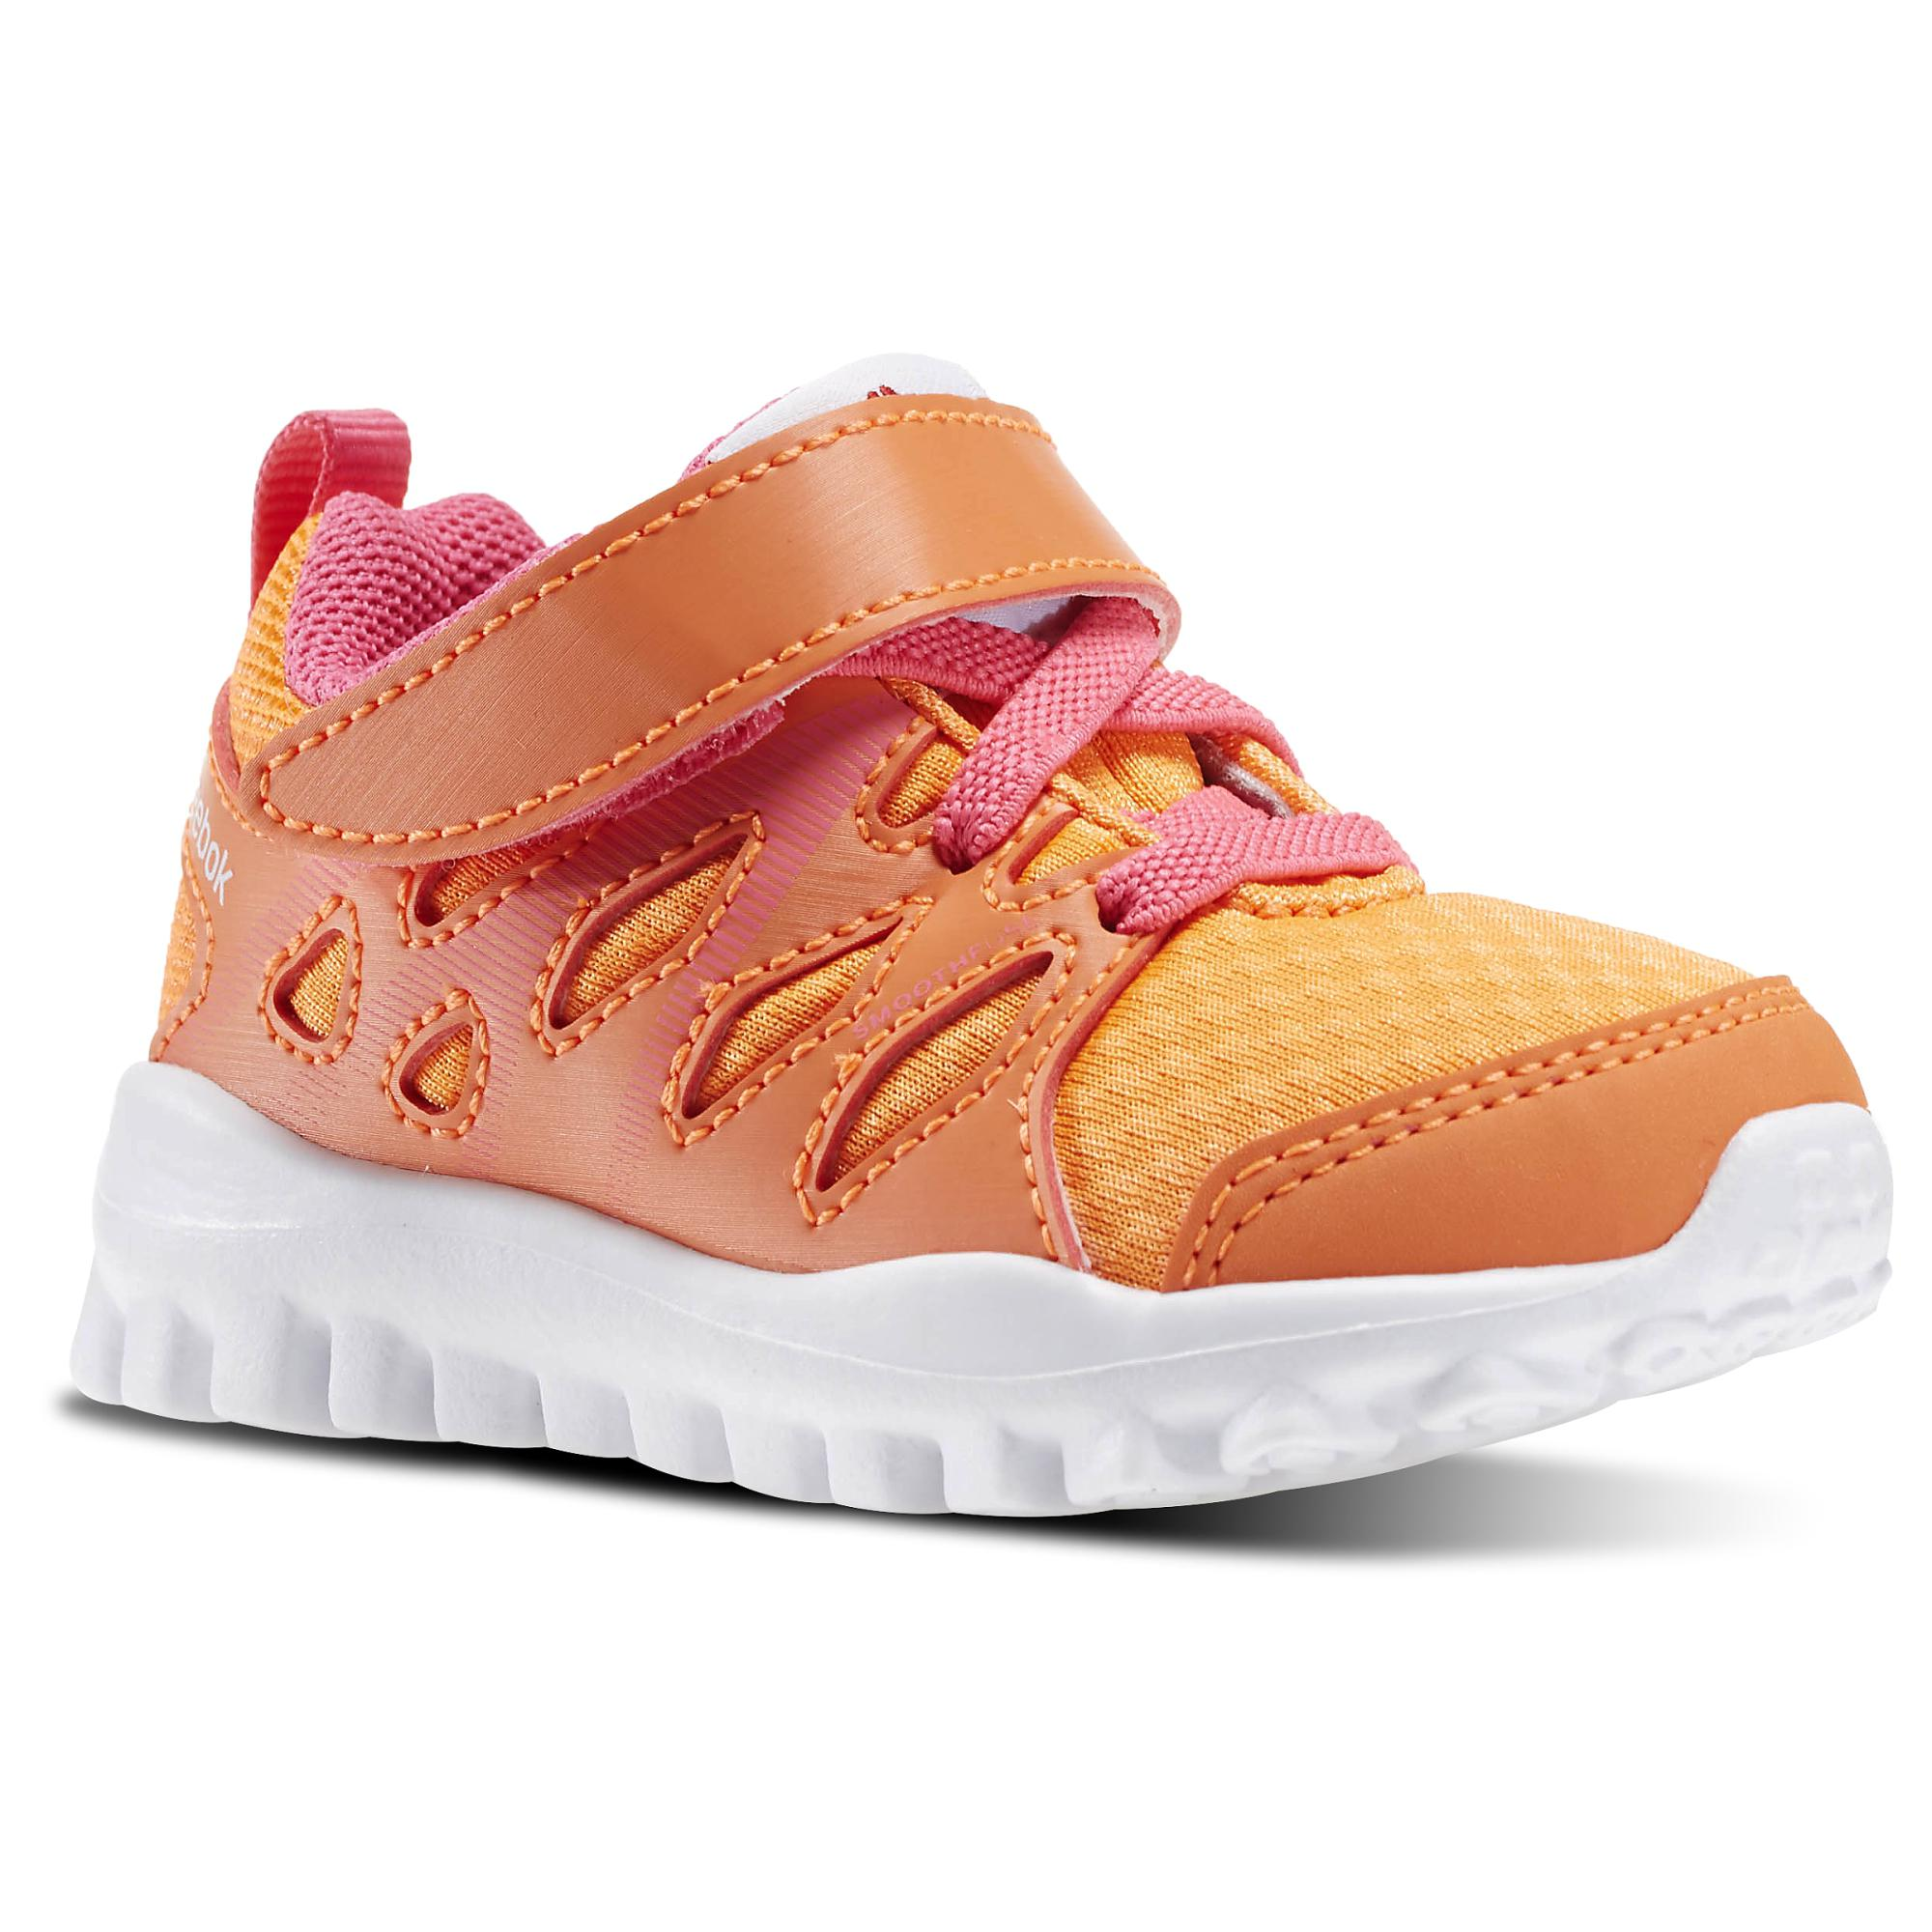 meet f1782 d6062 Reebok Realflex Train 4.0 infant (peach   pink)